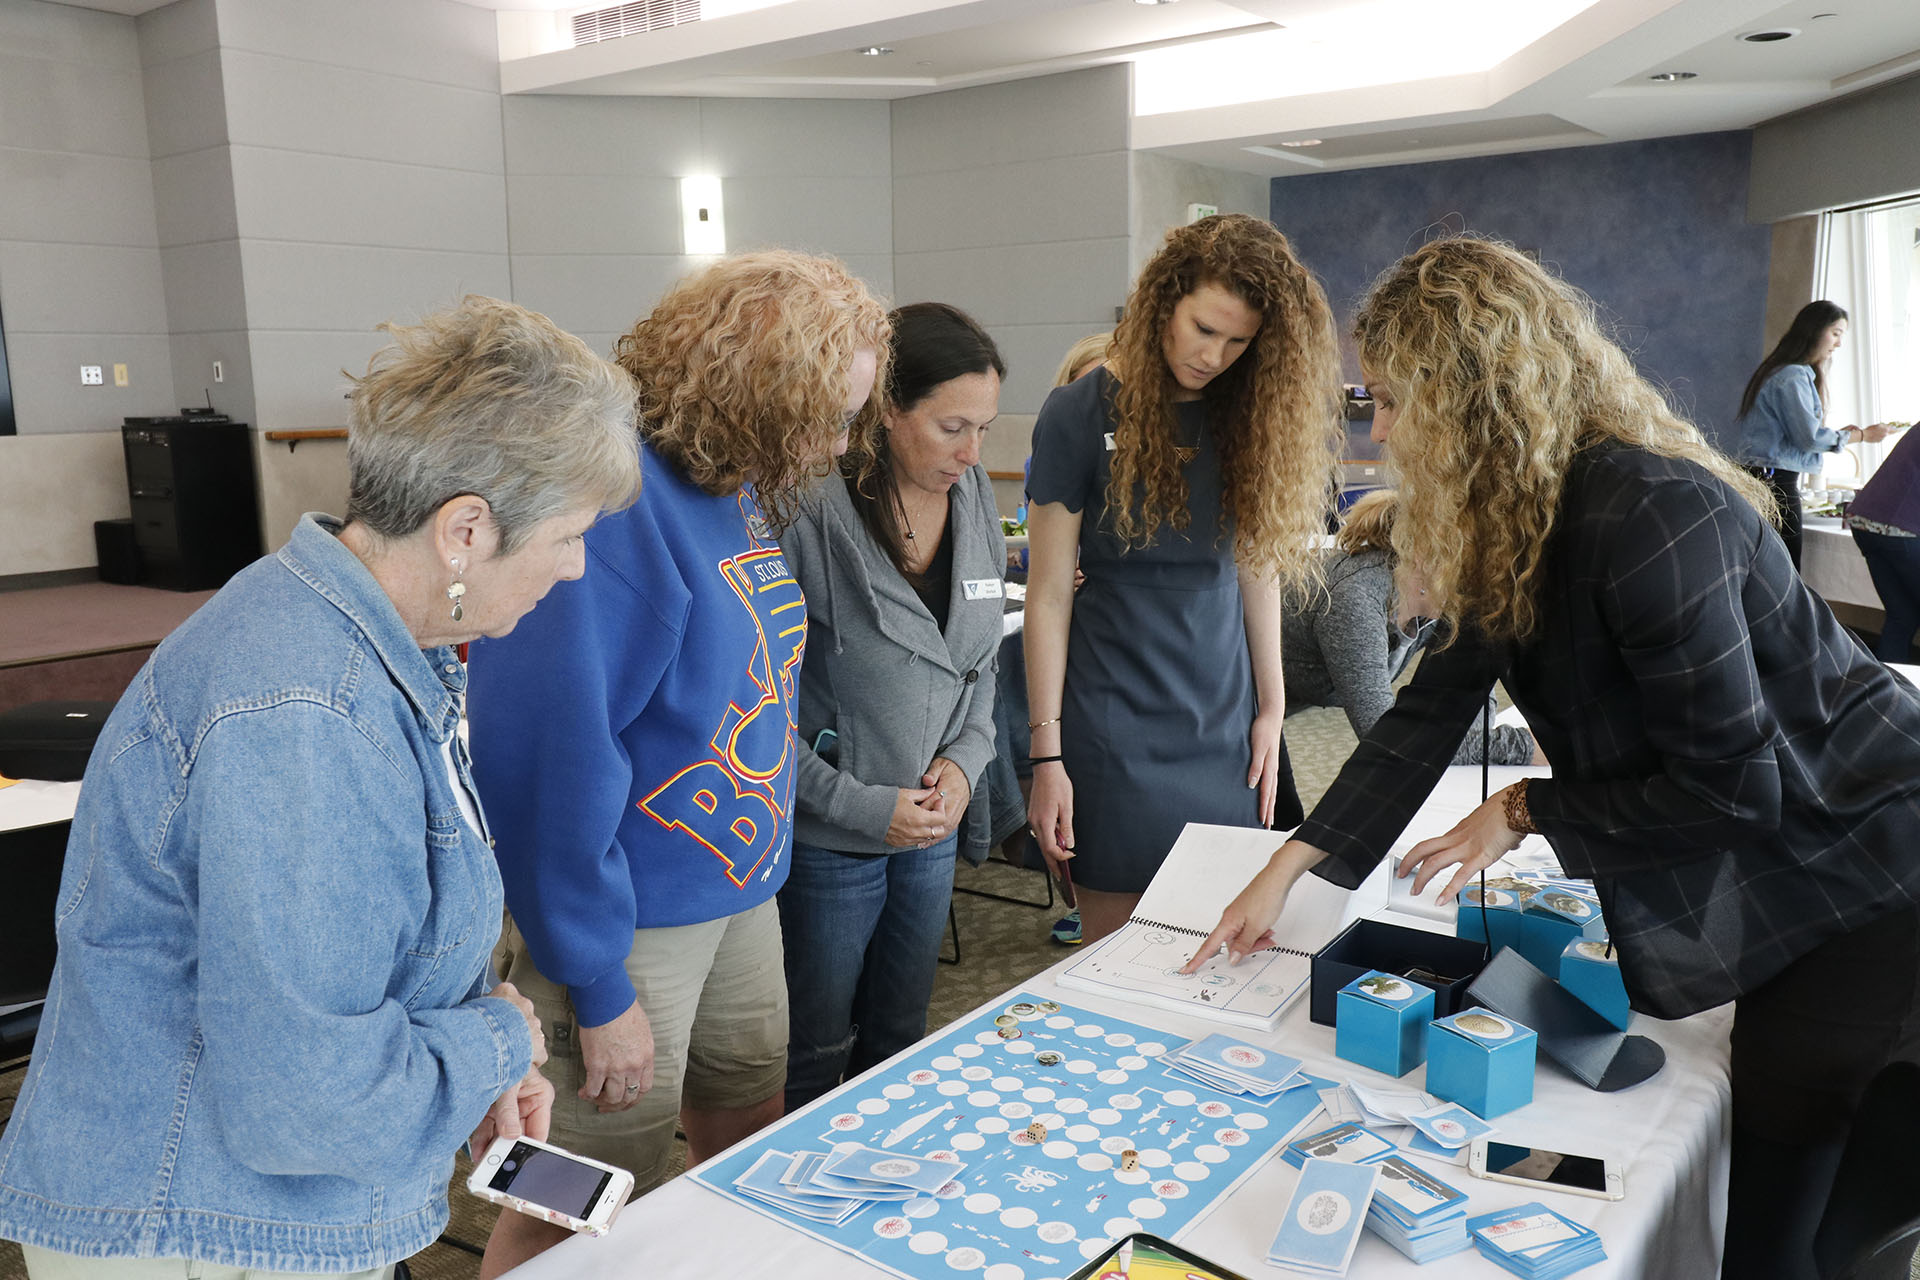 Erika Woolsey demonstrates educational materials developed by The Hydrous to workshop participants